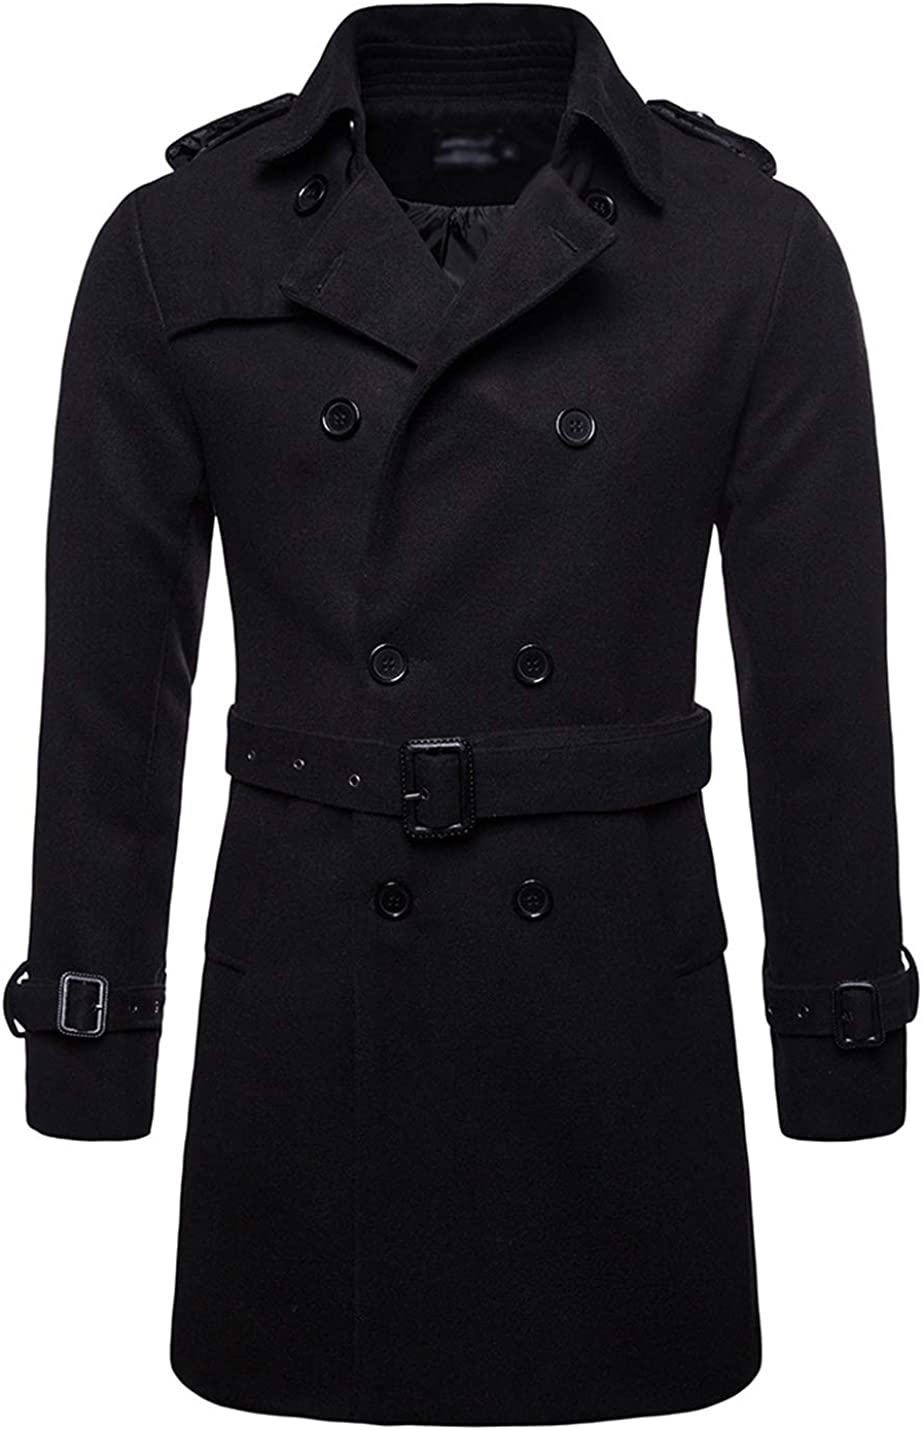 Gihuo Men's Lapel Wool Blend Double Breasted Pea Coat Topcoat with Belt